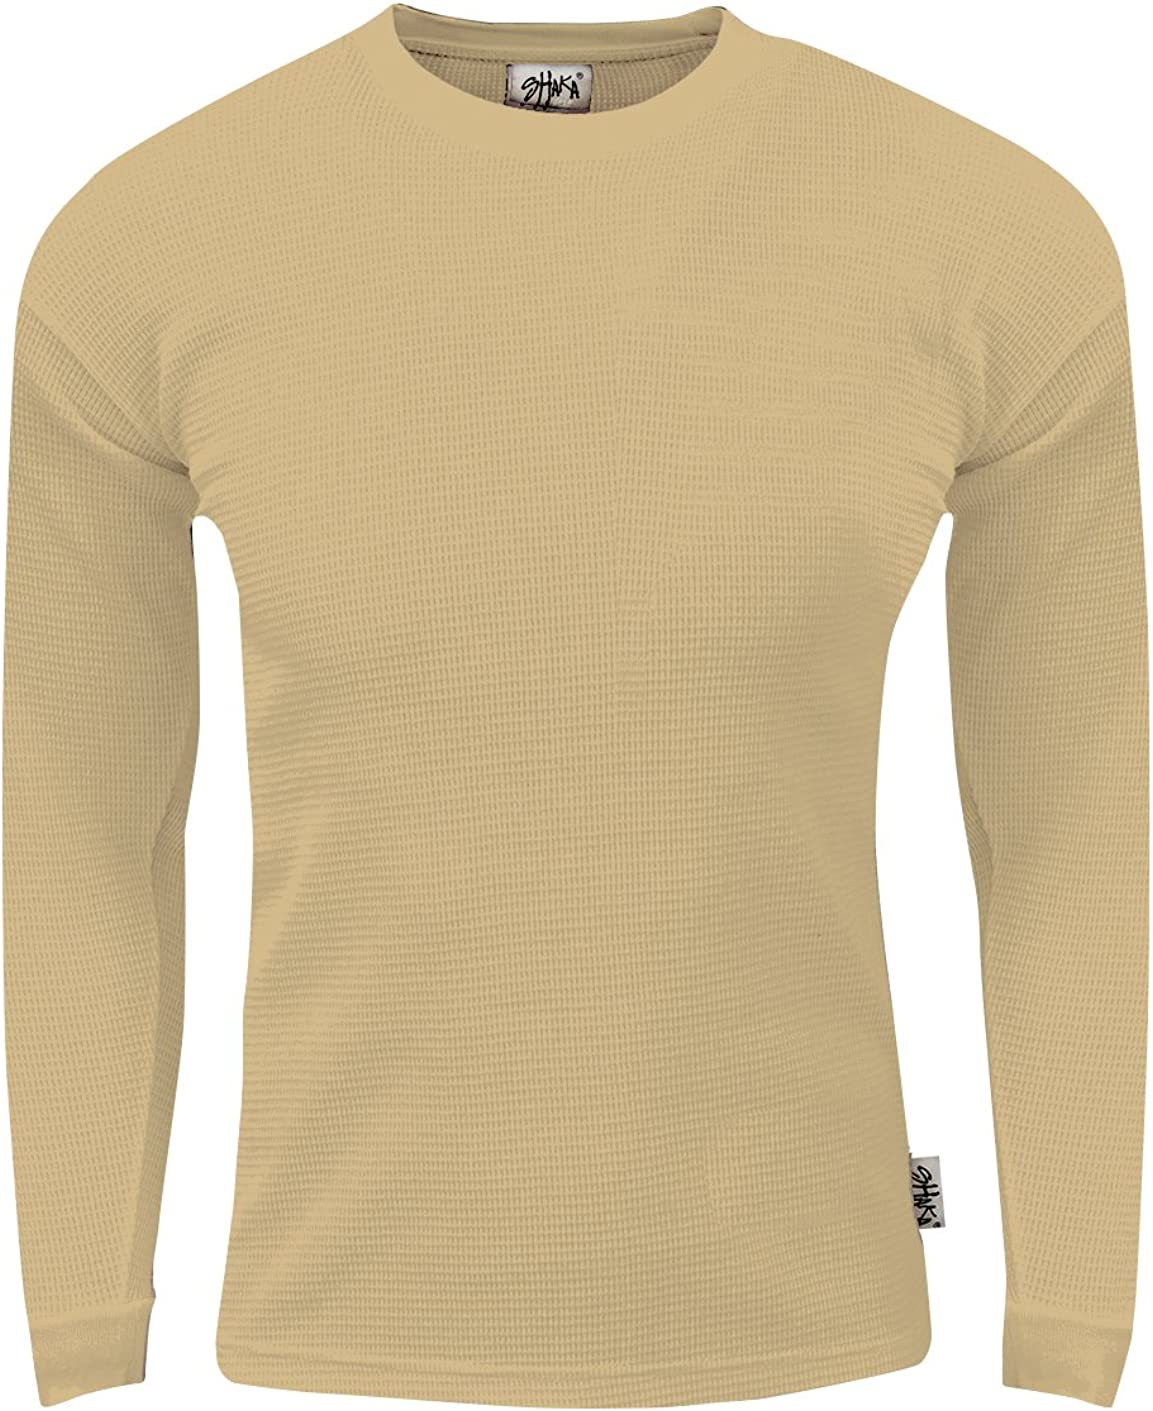 Heavyweight Waffle Thermal T Shirt Long Sleeve Crewneck Knitted Top Size XS-5XL Fitscloth Men/'s Knit Sweater Pullover